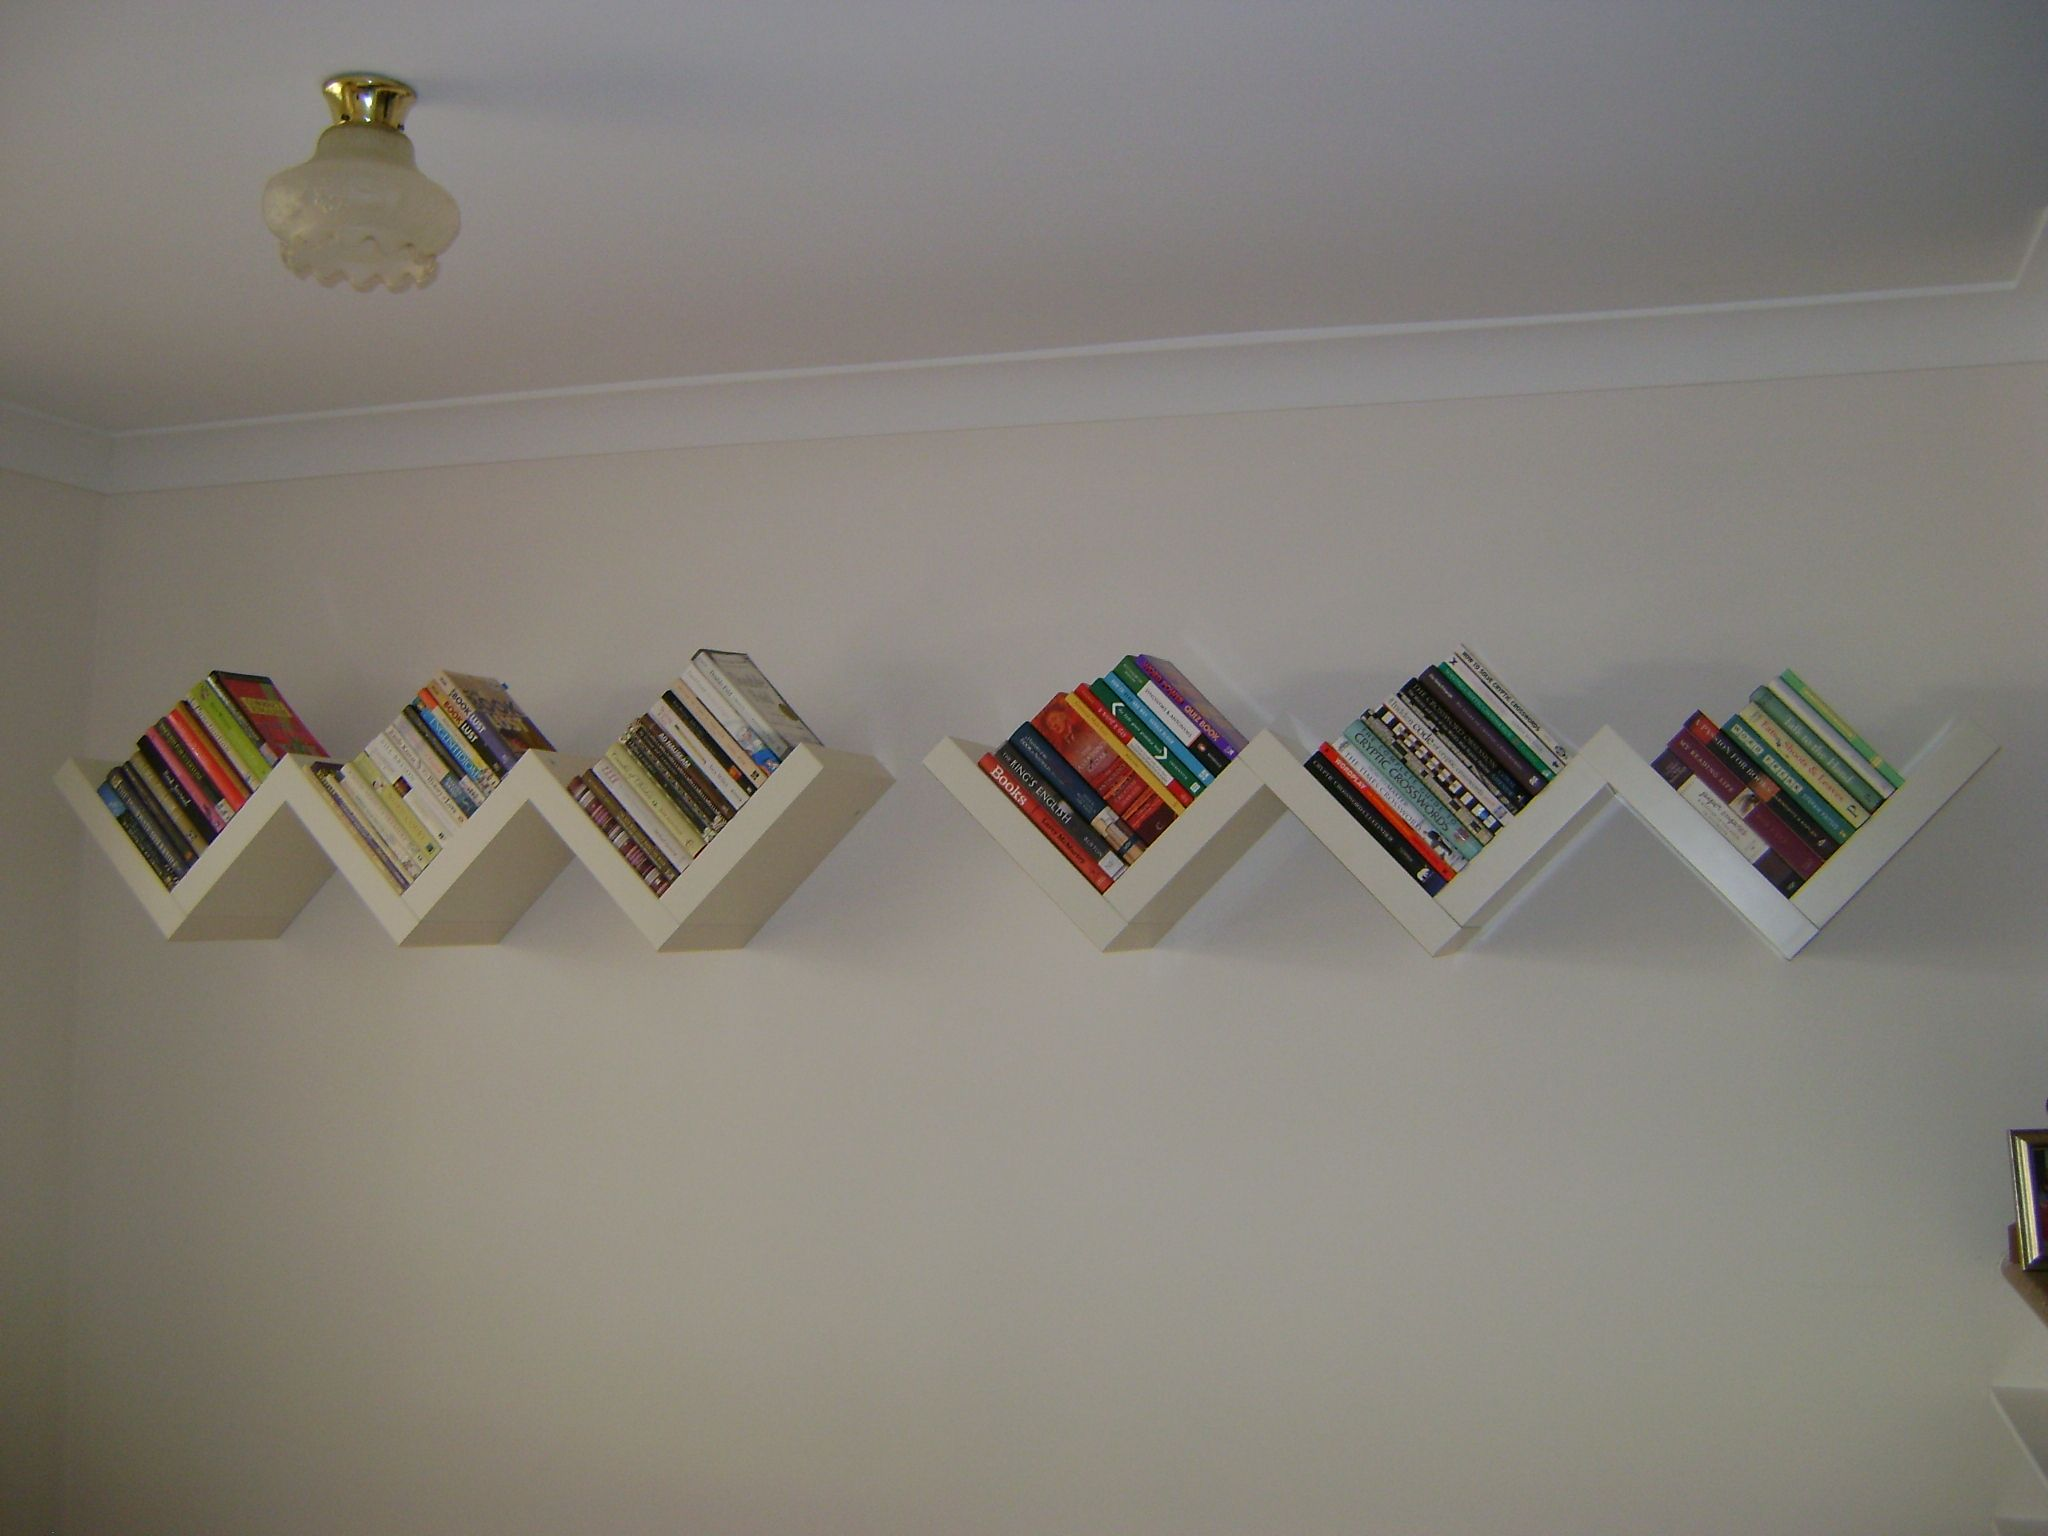 This Is My Ikea Lack Wall Mounted Book Shelves I Love The Look Of Them Particularly The Way The B Wall Bookshelves Ikea Wall Shelves Wall Mounted Bookshelves